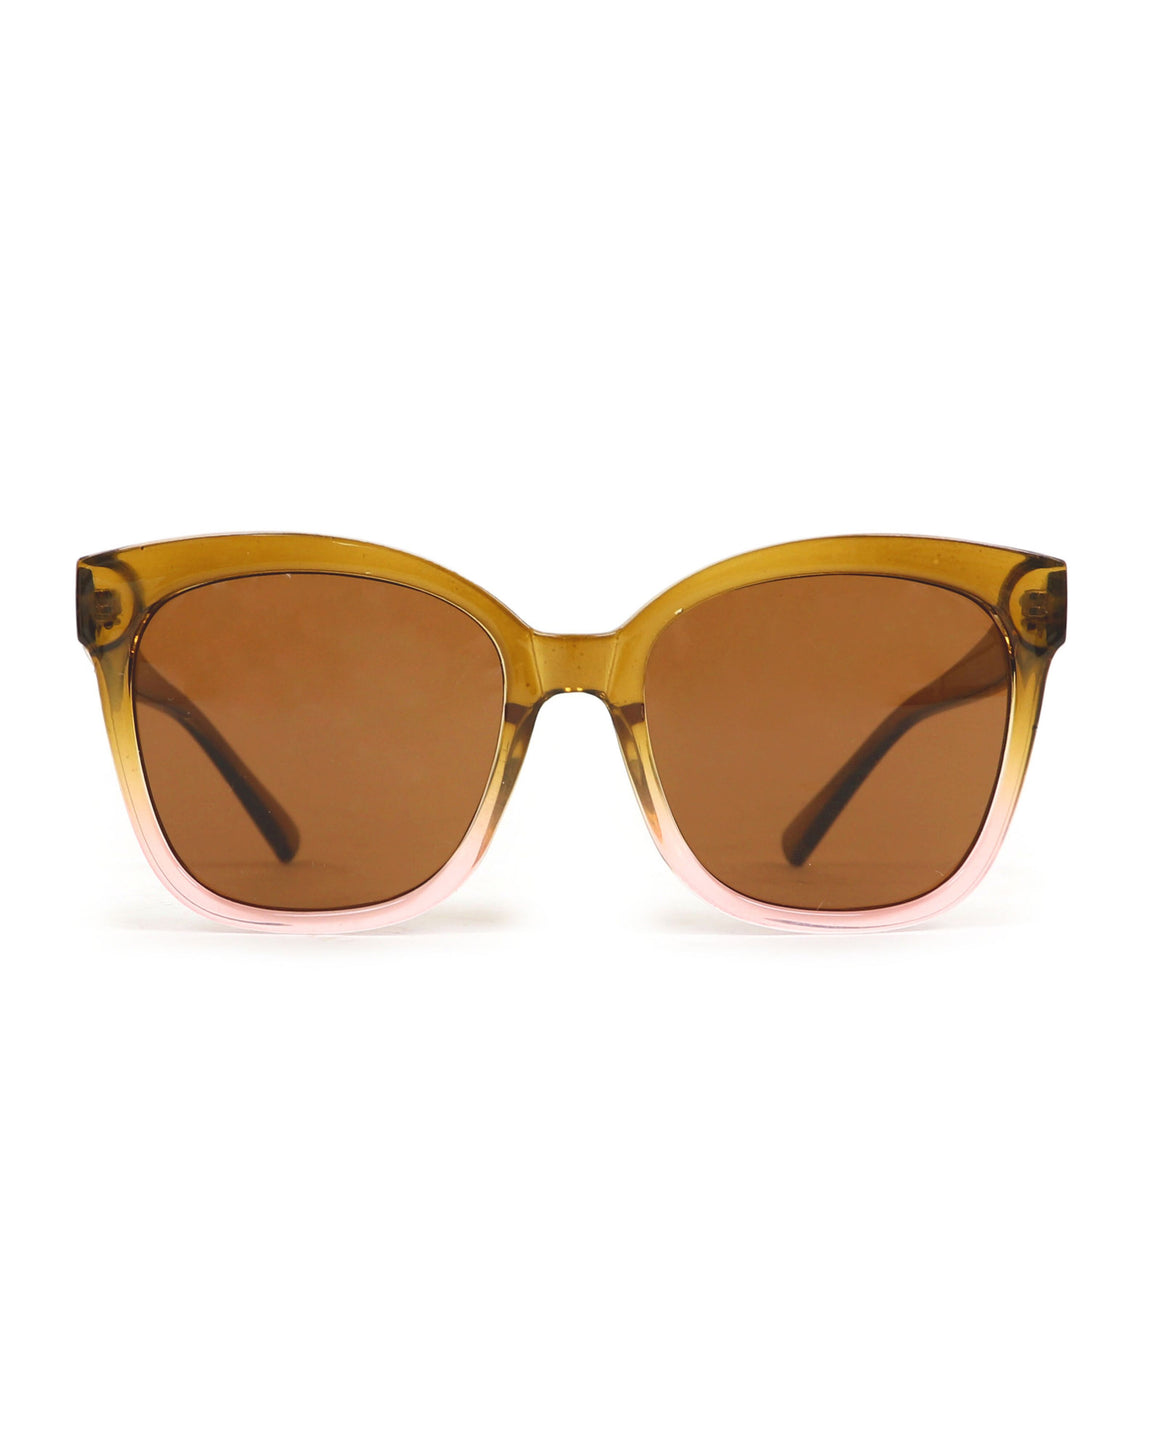 Powder Marcia Sunglasses